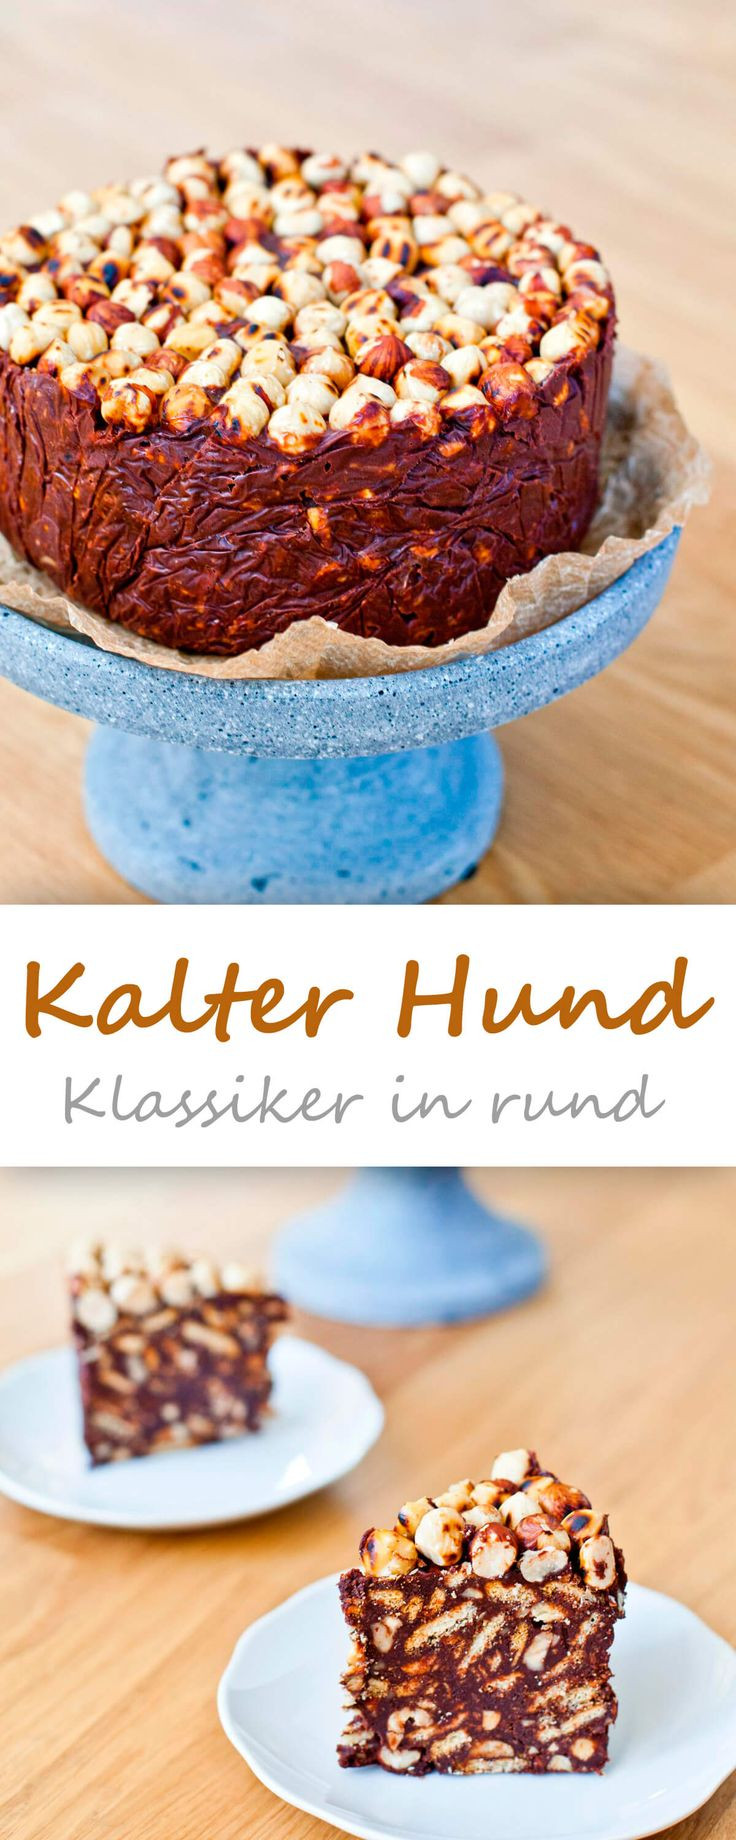 Kalter Hund in rund {no bake cake sunday}